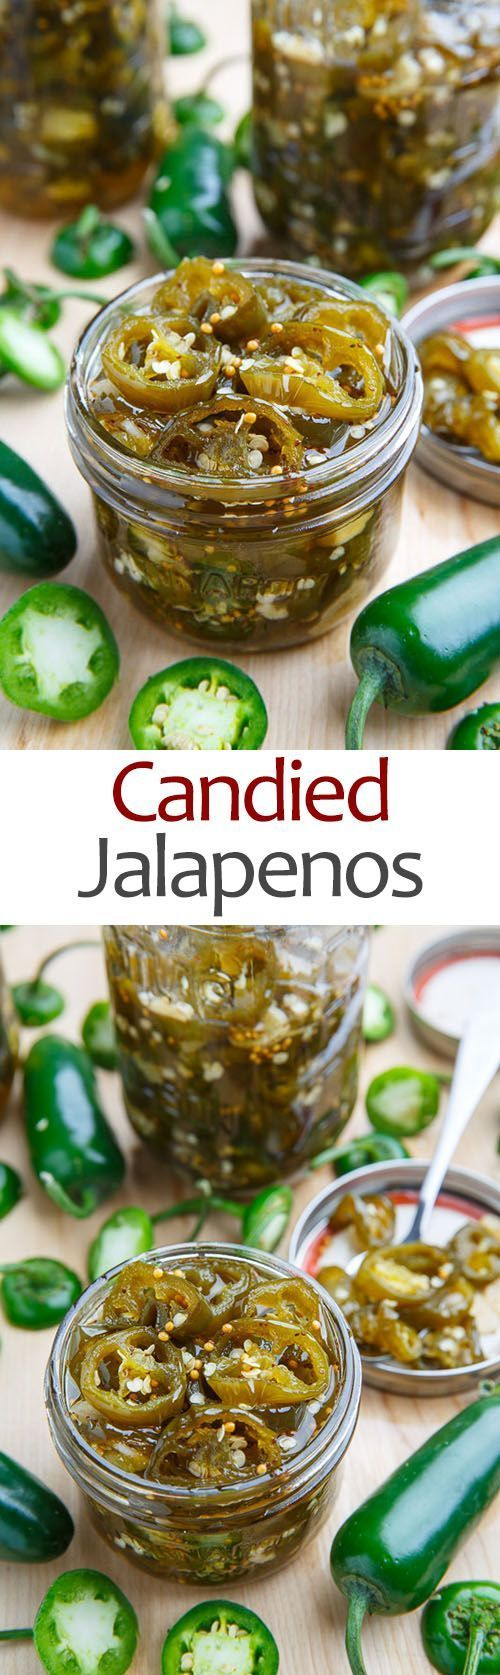 Candied Jalapenos - pickled and sweet, use them as a garnish or eat them straight out of the jar! | Closet Cooking